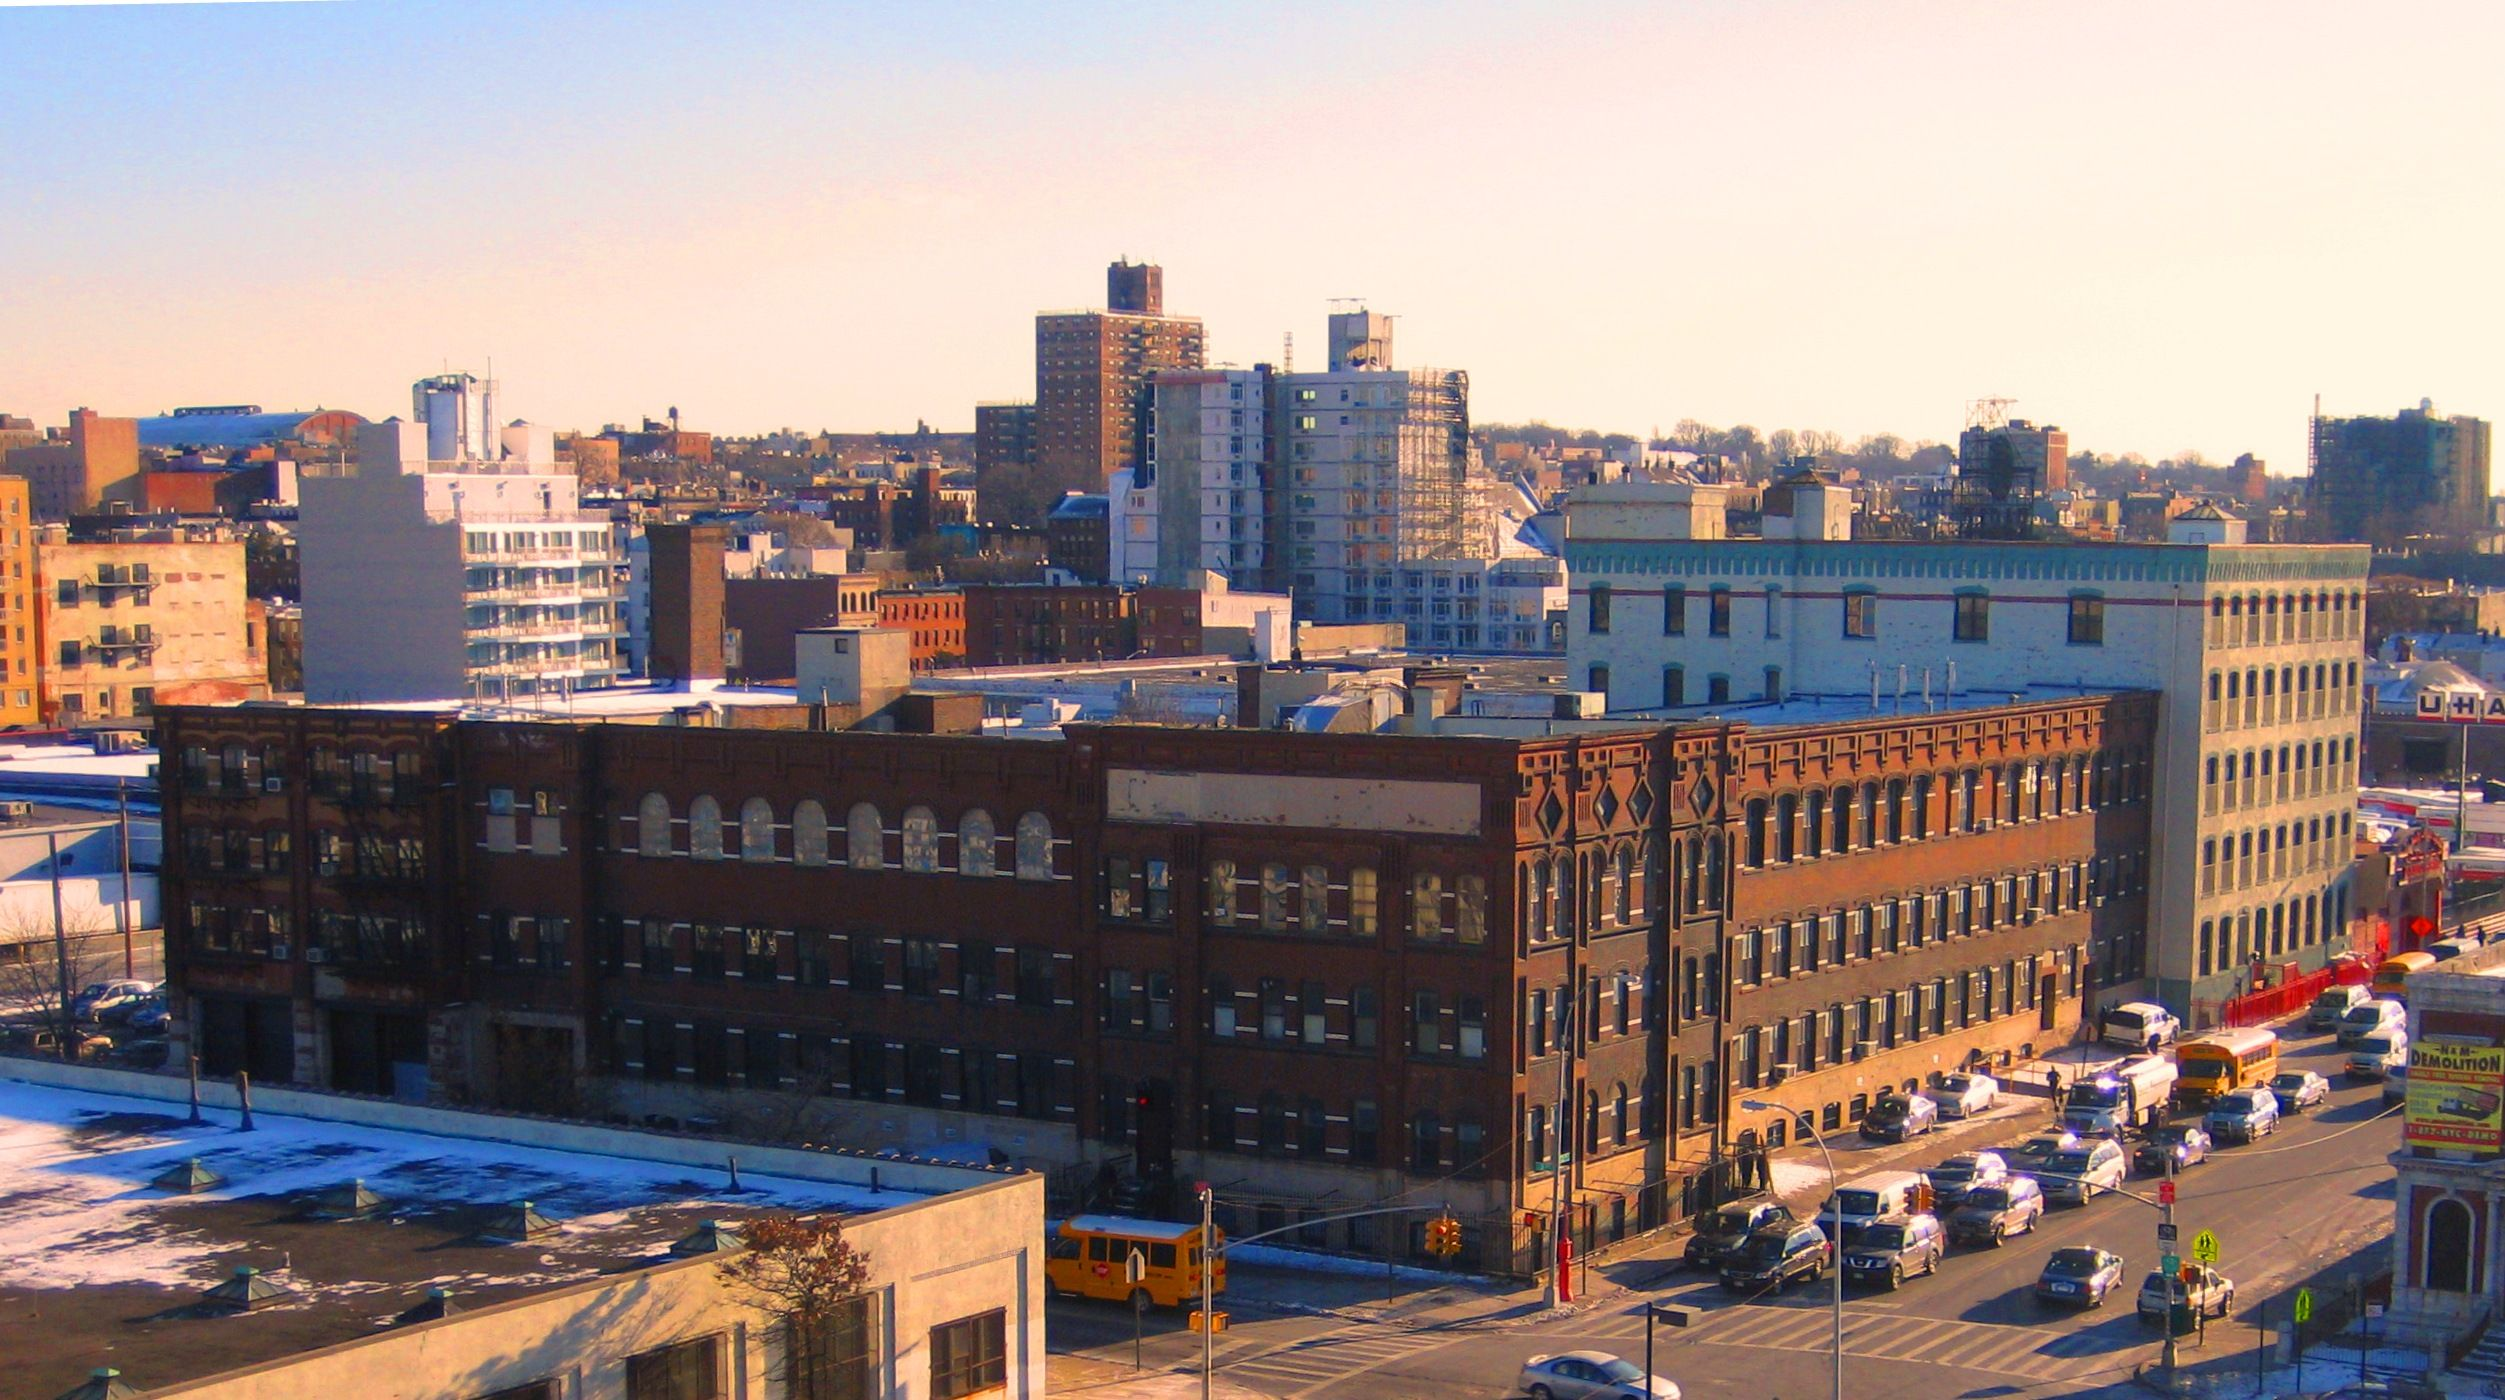 Just visited the Old American Can Factory in Brooklyn, bringing together business and social entrepreneurs, artists and artisans, composers, movie makers in one creative space. Hoping to create something like this at Mason. http://www.xoprojects.com/places_oac.html